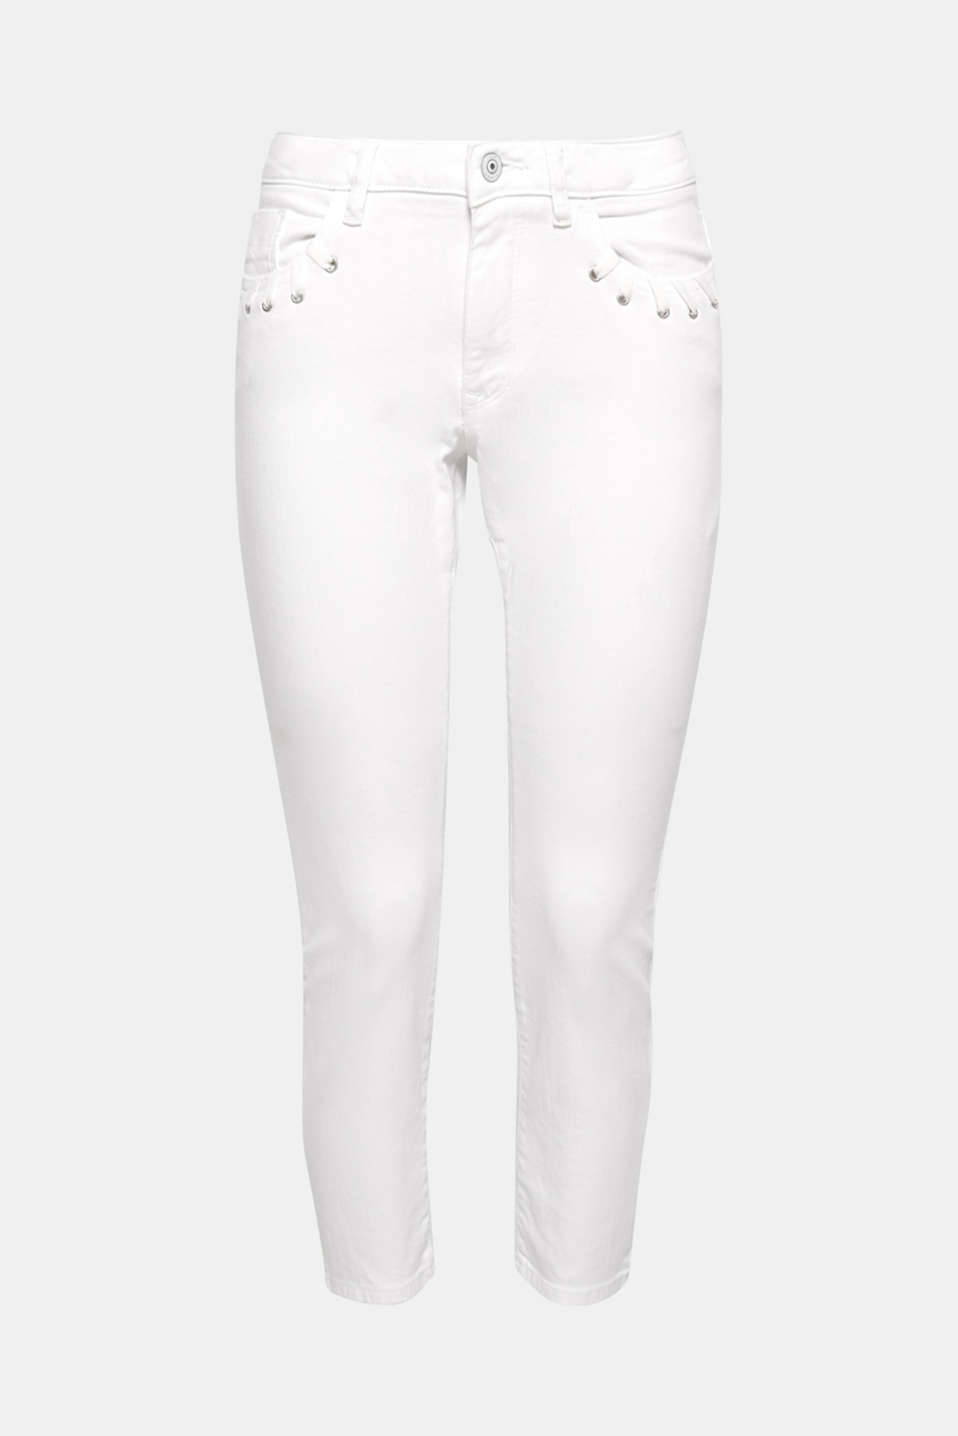 A must-have for your summer wardrobe: ankle-length cotton jeans in pure white with added stretch for comfort.